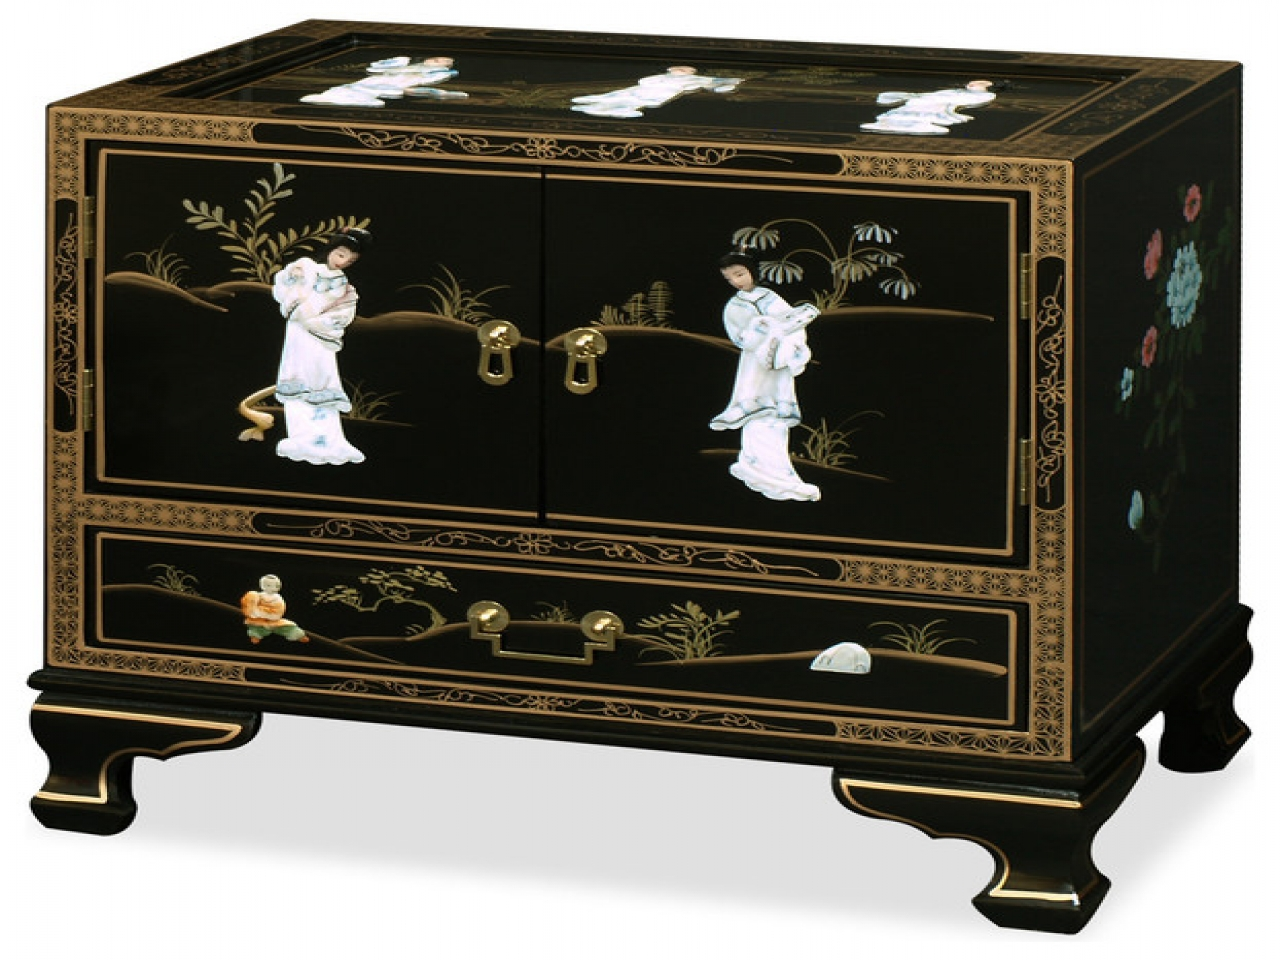 japanese-lacquer-finish-asian-black-lacquer-side-table-53a8c9939ddfb2db.jpg